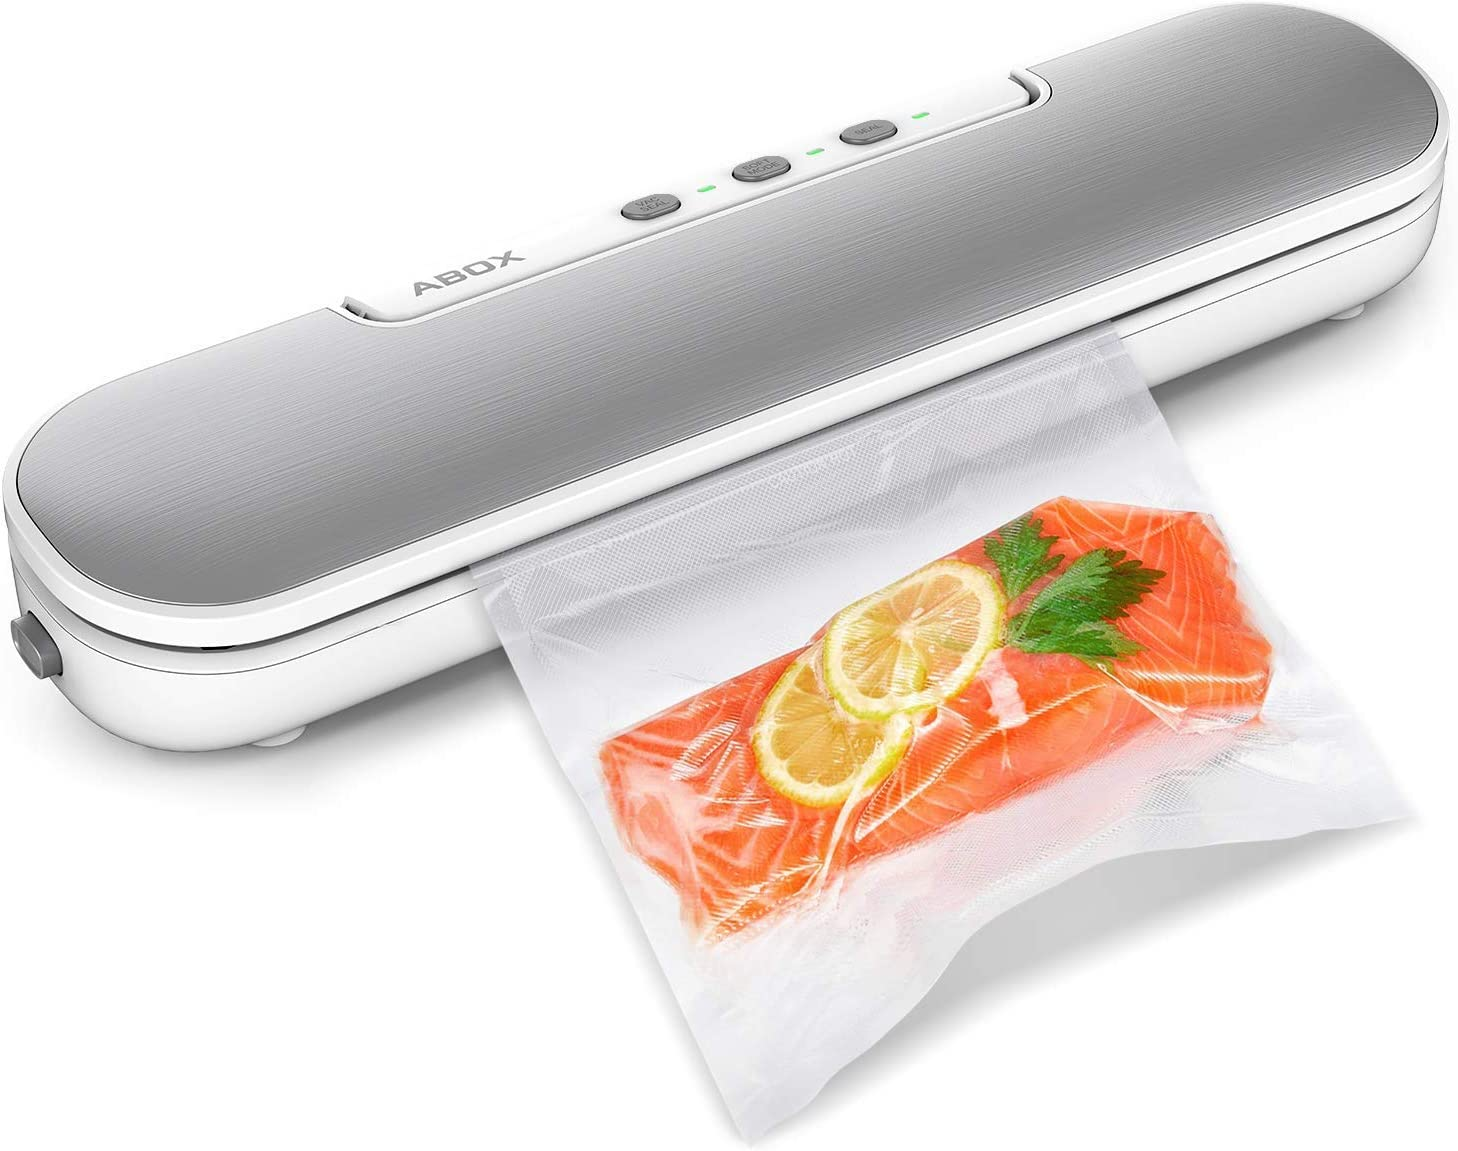 Vacuum Sealer Machine, ABOX V69 Portable Food Vacuum Air Sealing System for Food Saver Storage, Compact Design with Magnets and 10 Bags (Renewed)